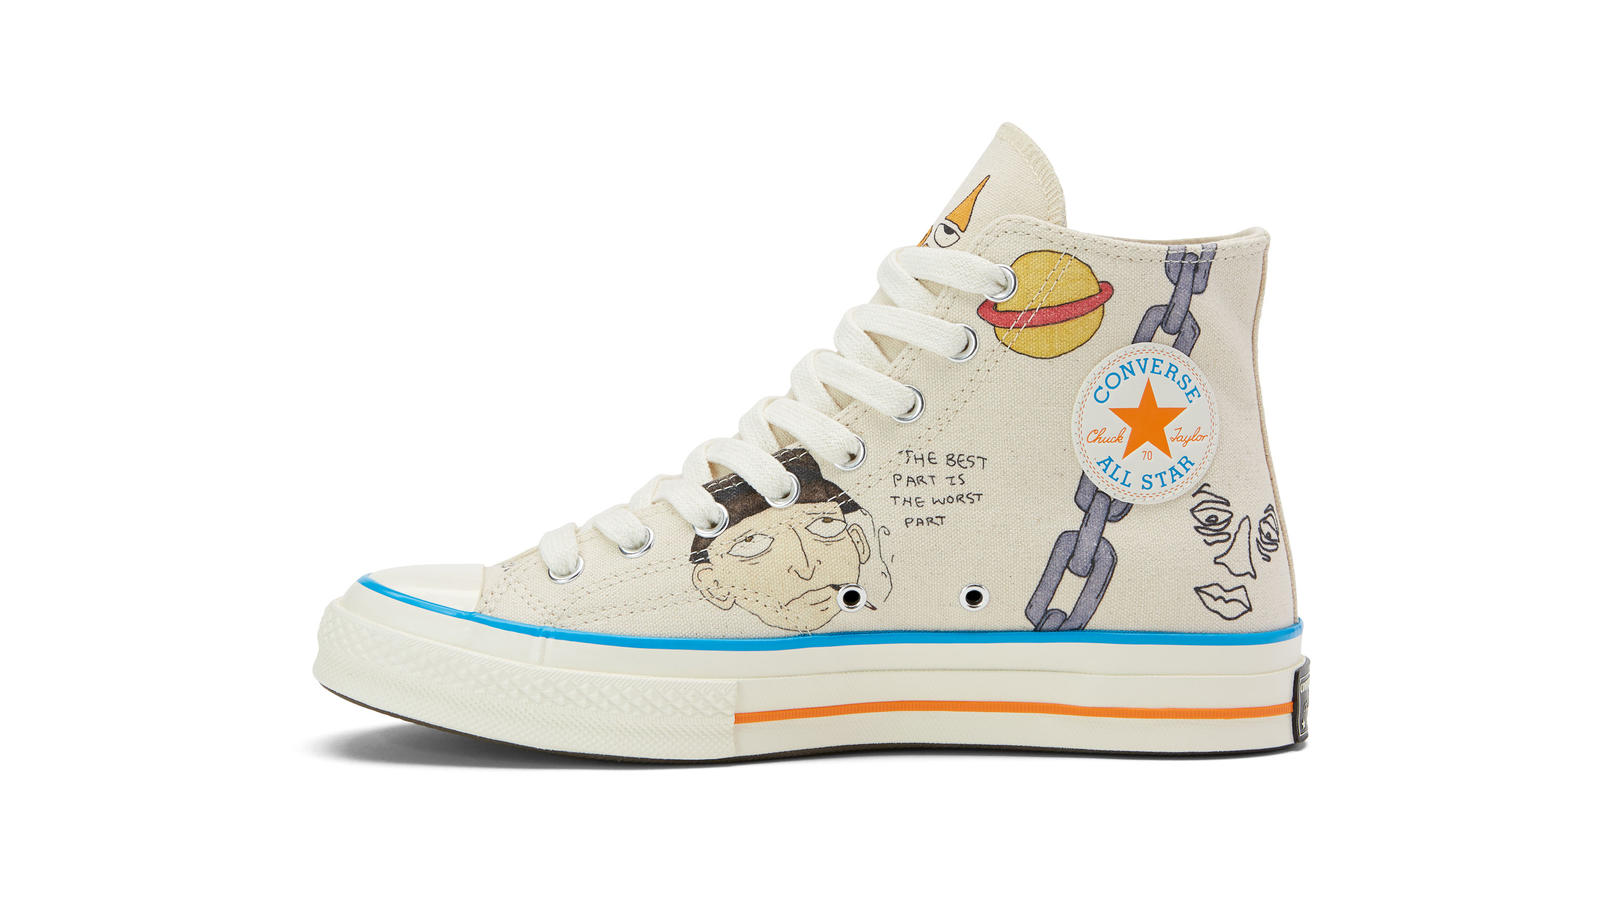 071f5396c0a Artist Series is a new global Foot Locker exclusive collection curated by  Tyler